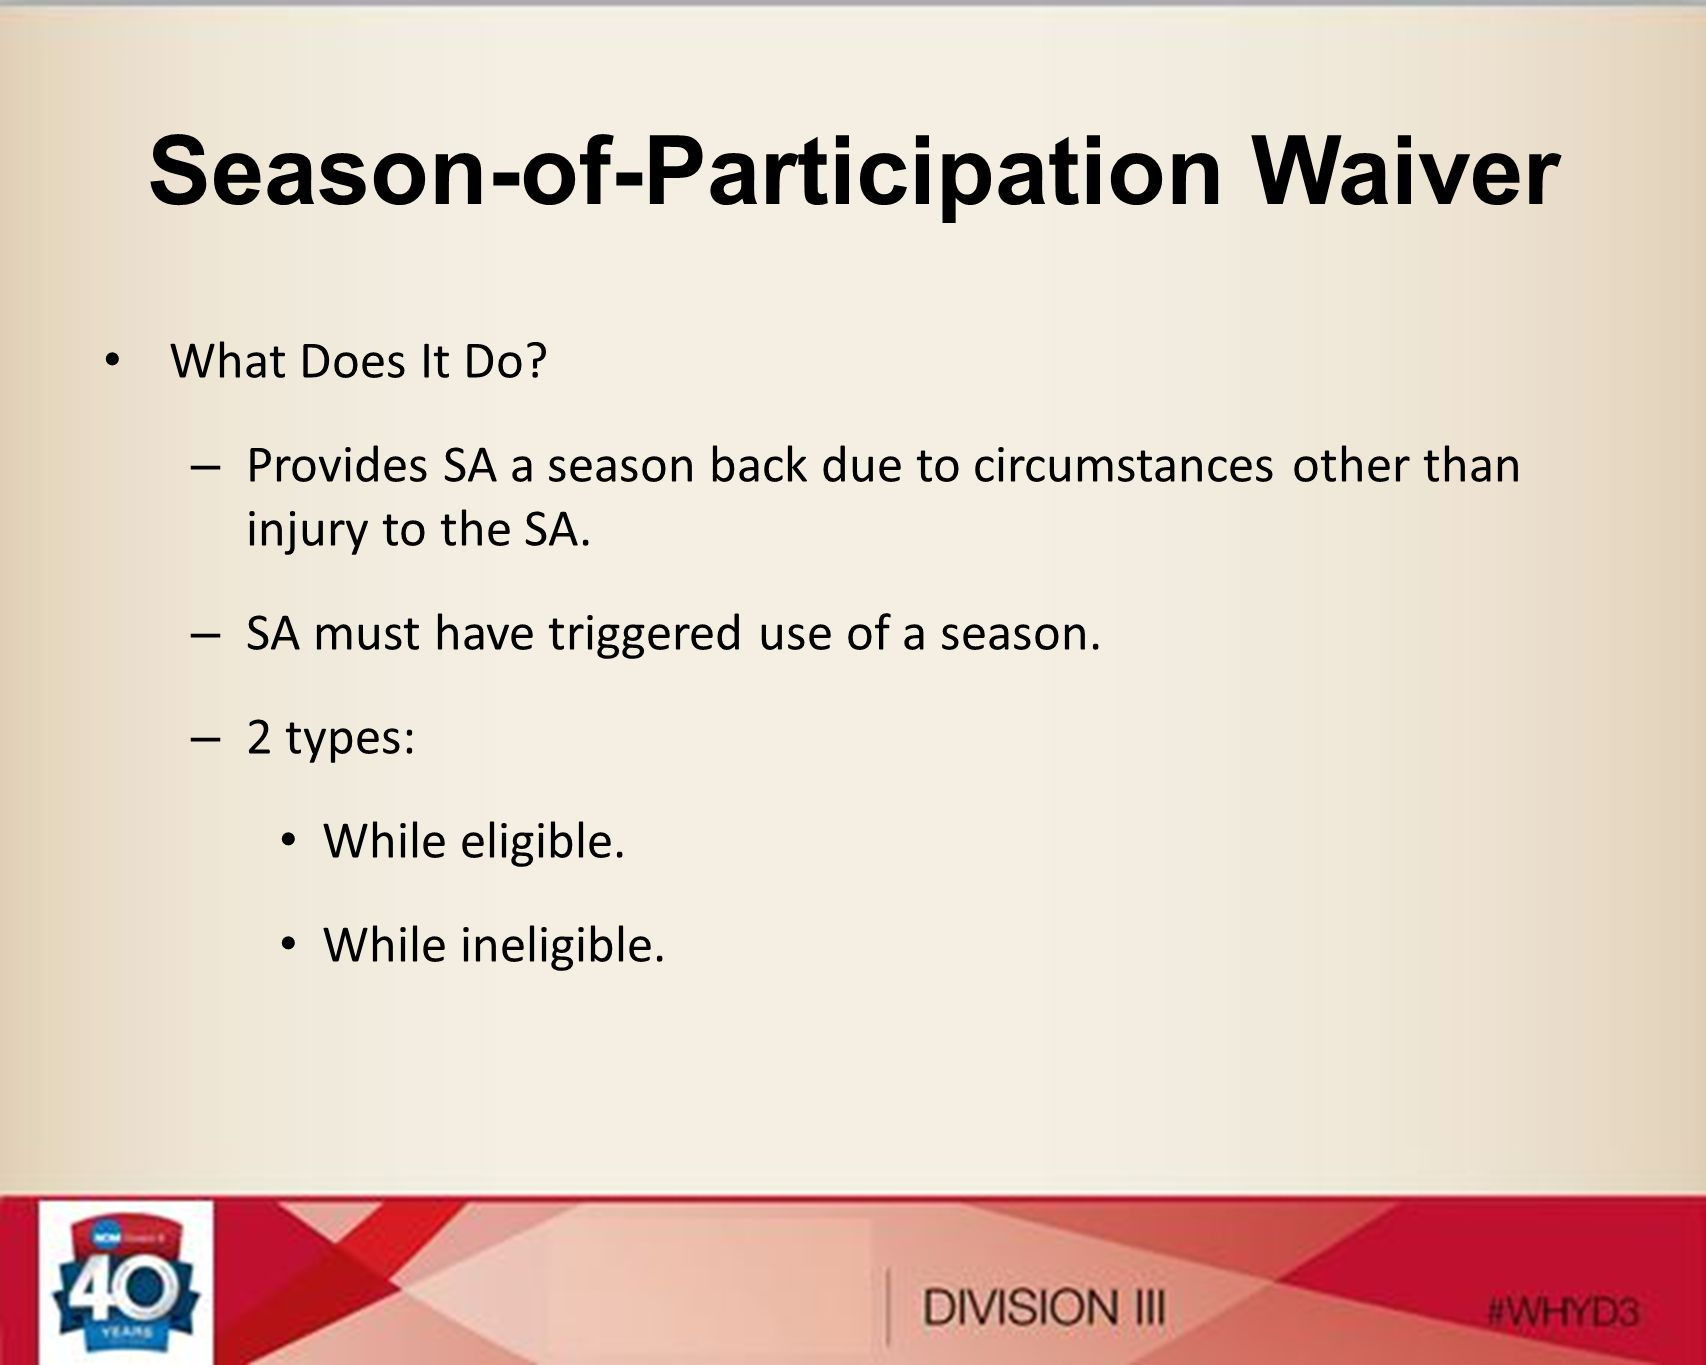 Season-of-Participation Waiver